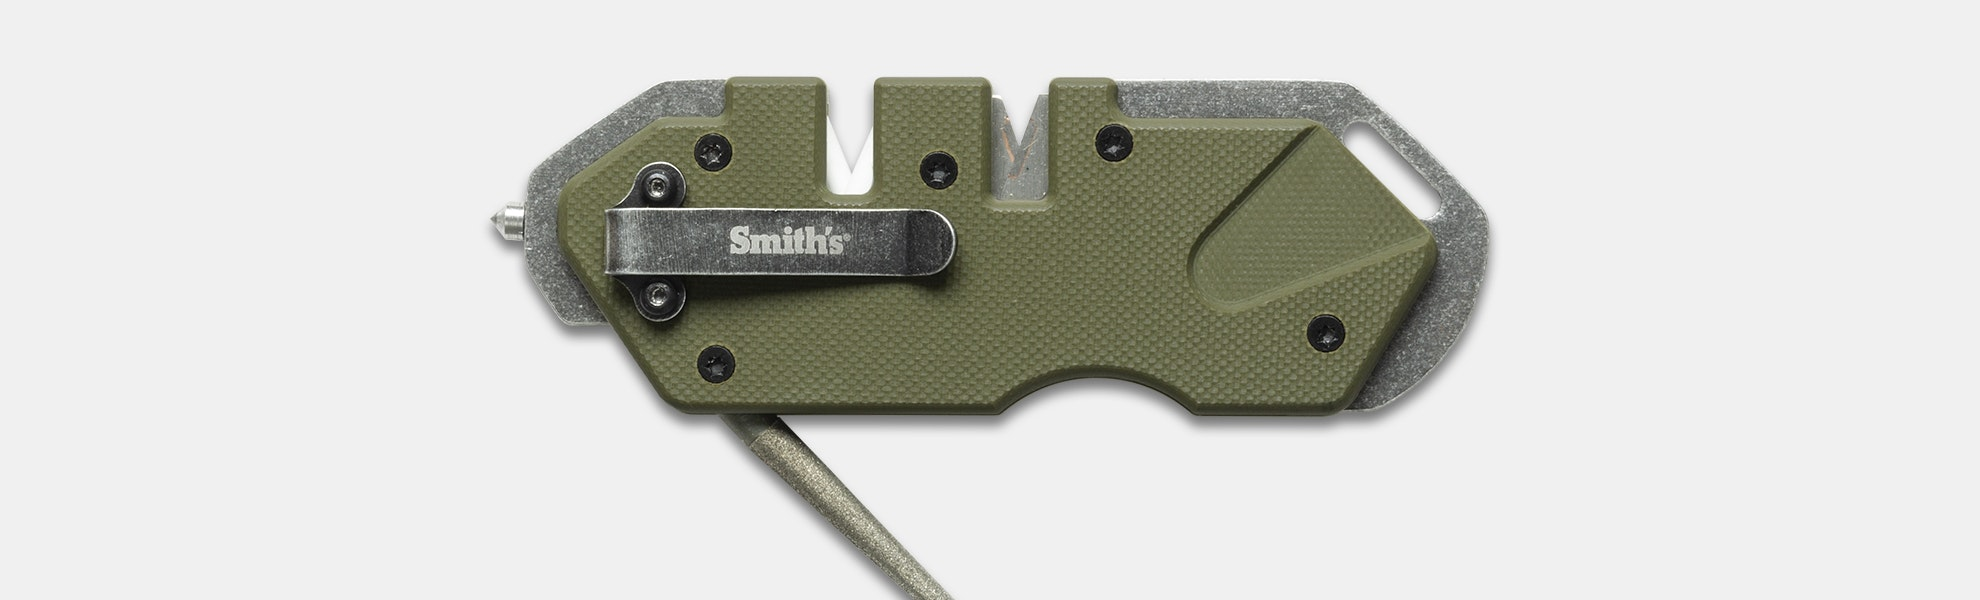 Smith's Sharpeners: PP1 Tactical Knife Sharpeners